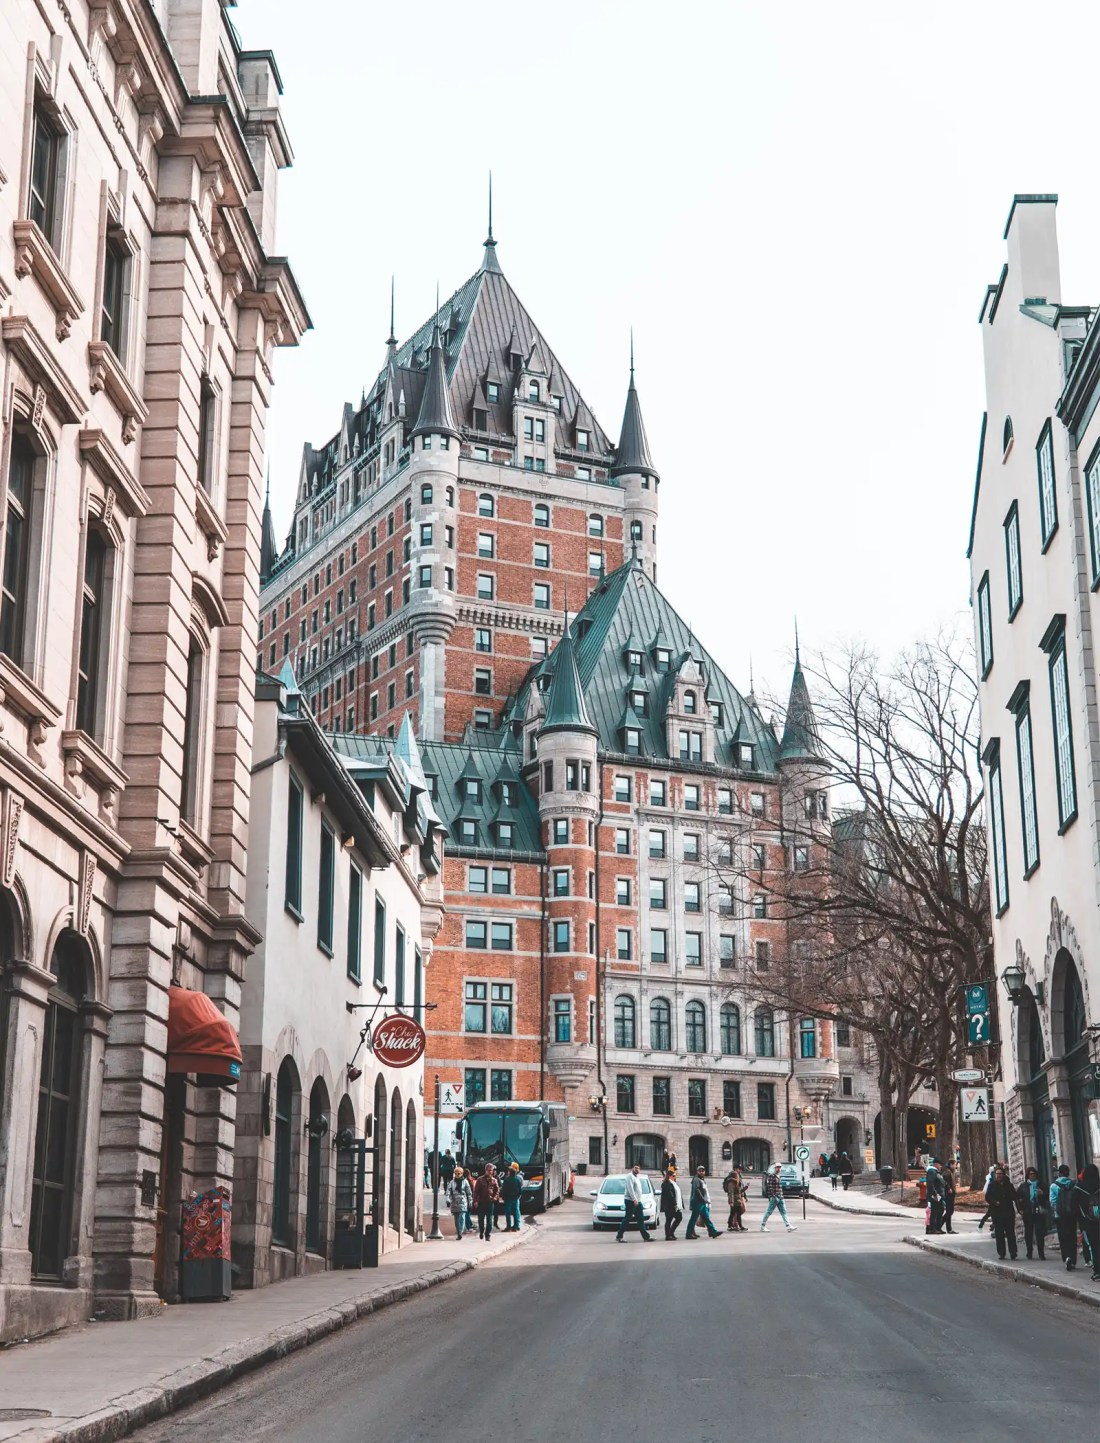 A view of Fairmont Le Chateau Frontenac in Old Quebec City, Quebec, Canada